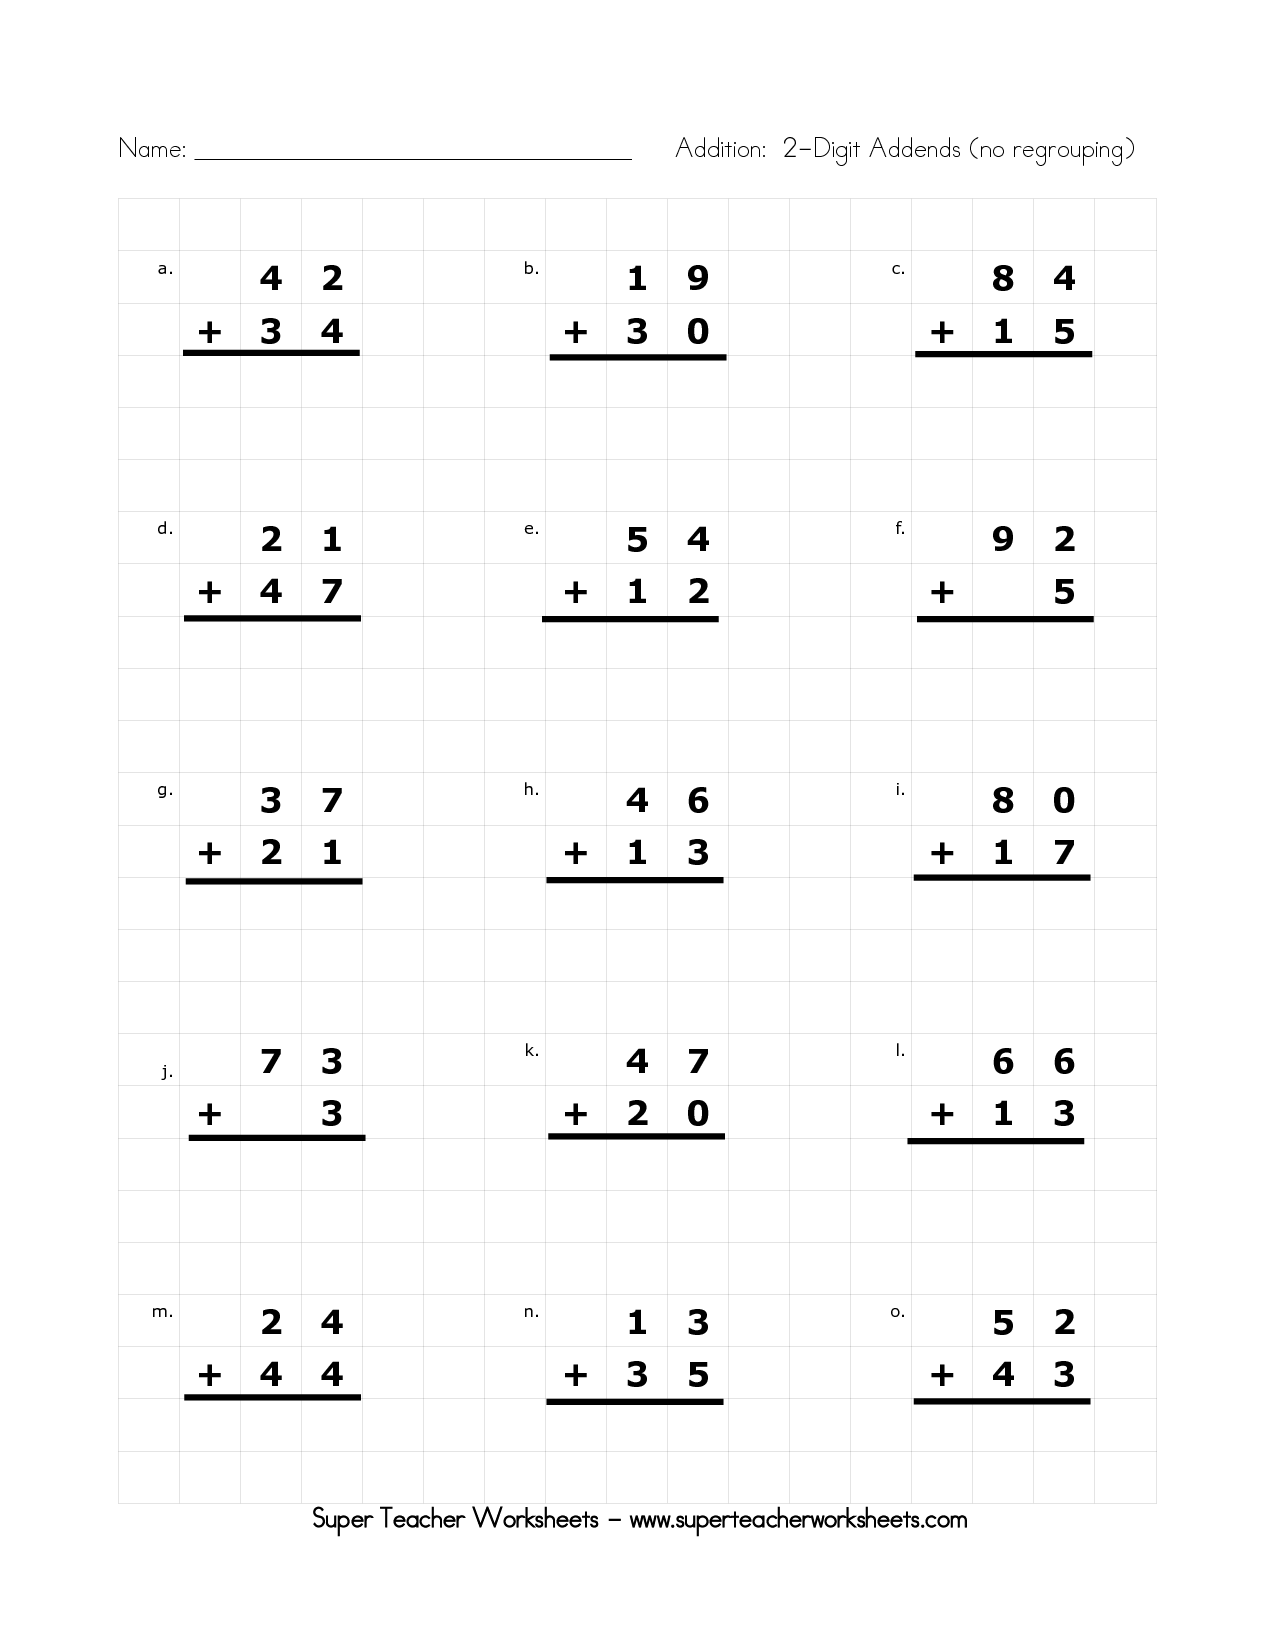 hight resolution of https://dubaikhalifas.com/2-digit-addition-without-regrouping-worksheets-mykinglist-2nd-grade-math-worksheets/